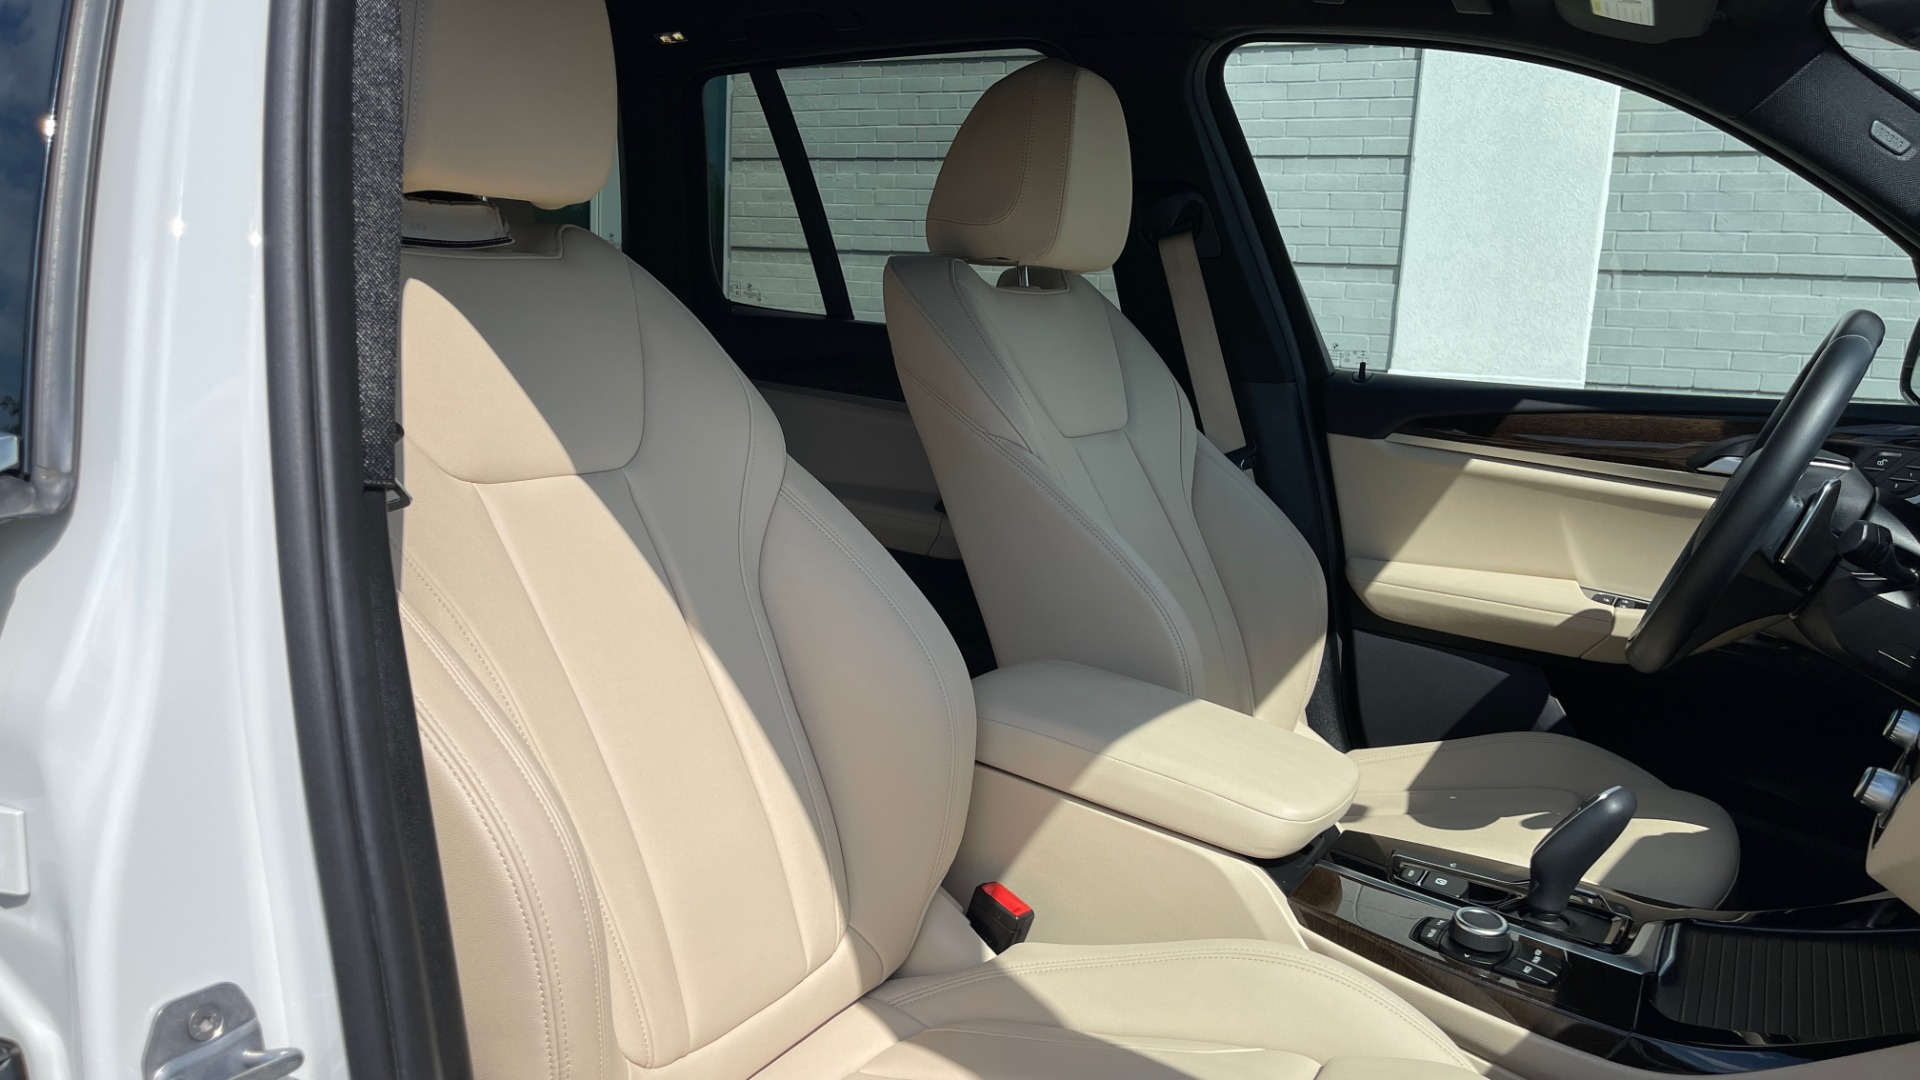 Used 2018 BMW X3 XDRIVE30I CONVENIENCE PKG / HEATED FRONT SEATS / REARVIEW for sale $36,595 at Formula Imports in Charlotte NC 28227 64